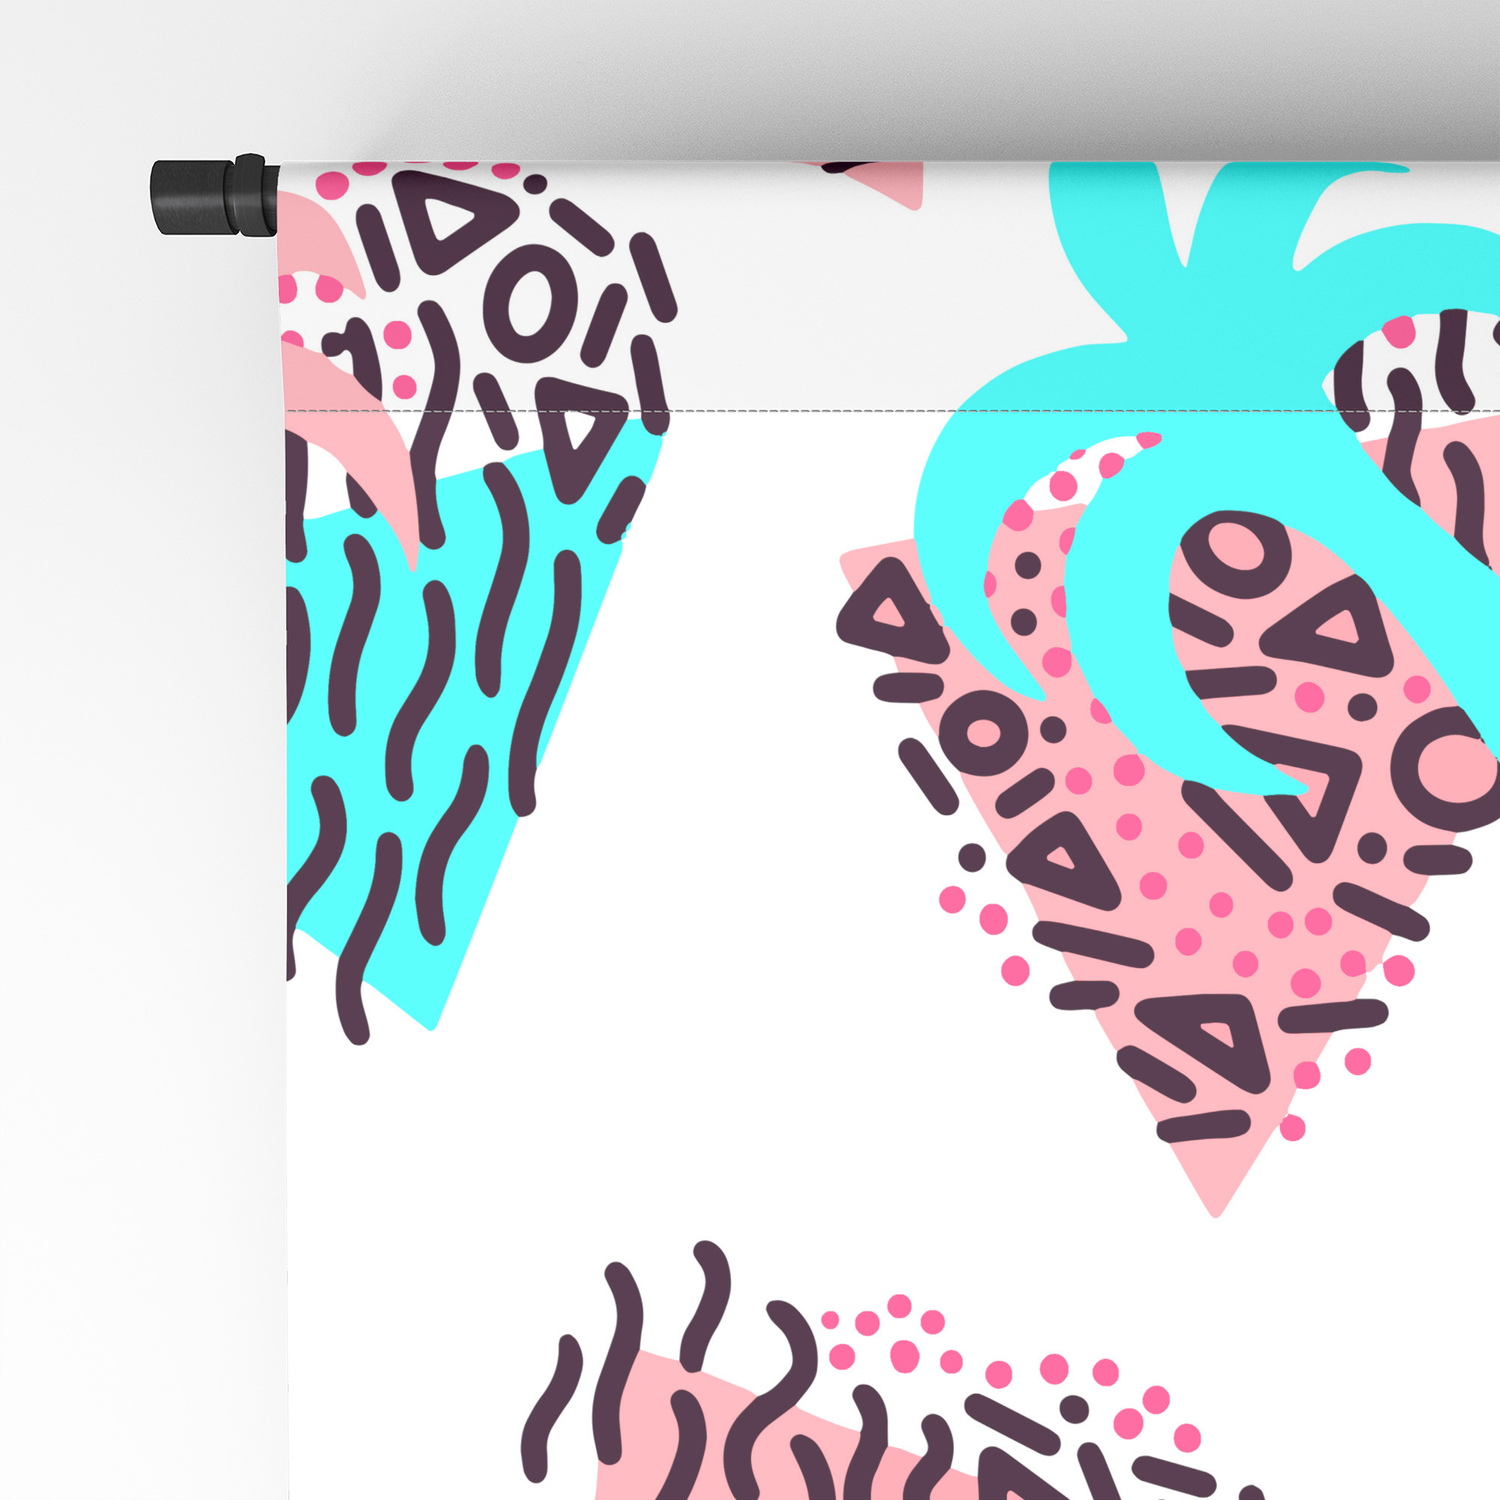 Cute Girly Retro 90s Palm Tree Doodles Pattern Blackout Curtain by  lafemmeart